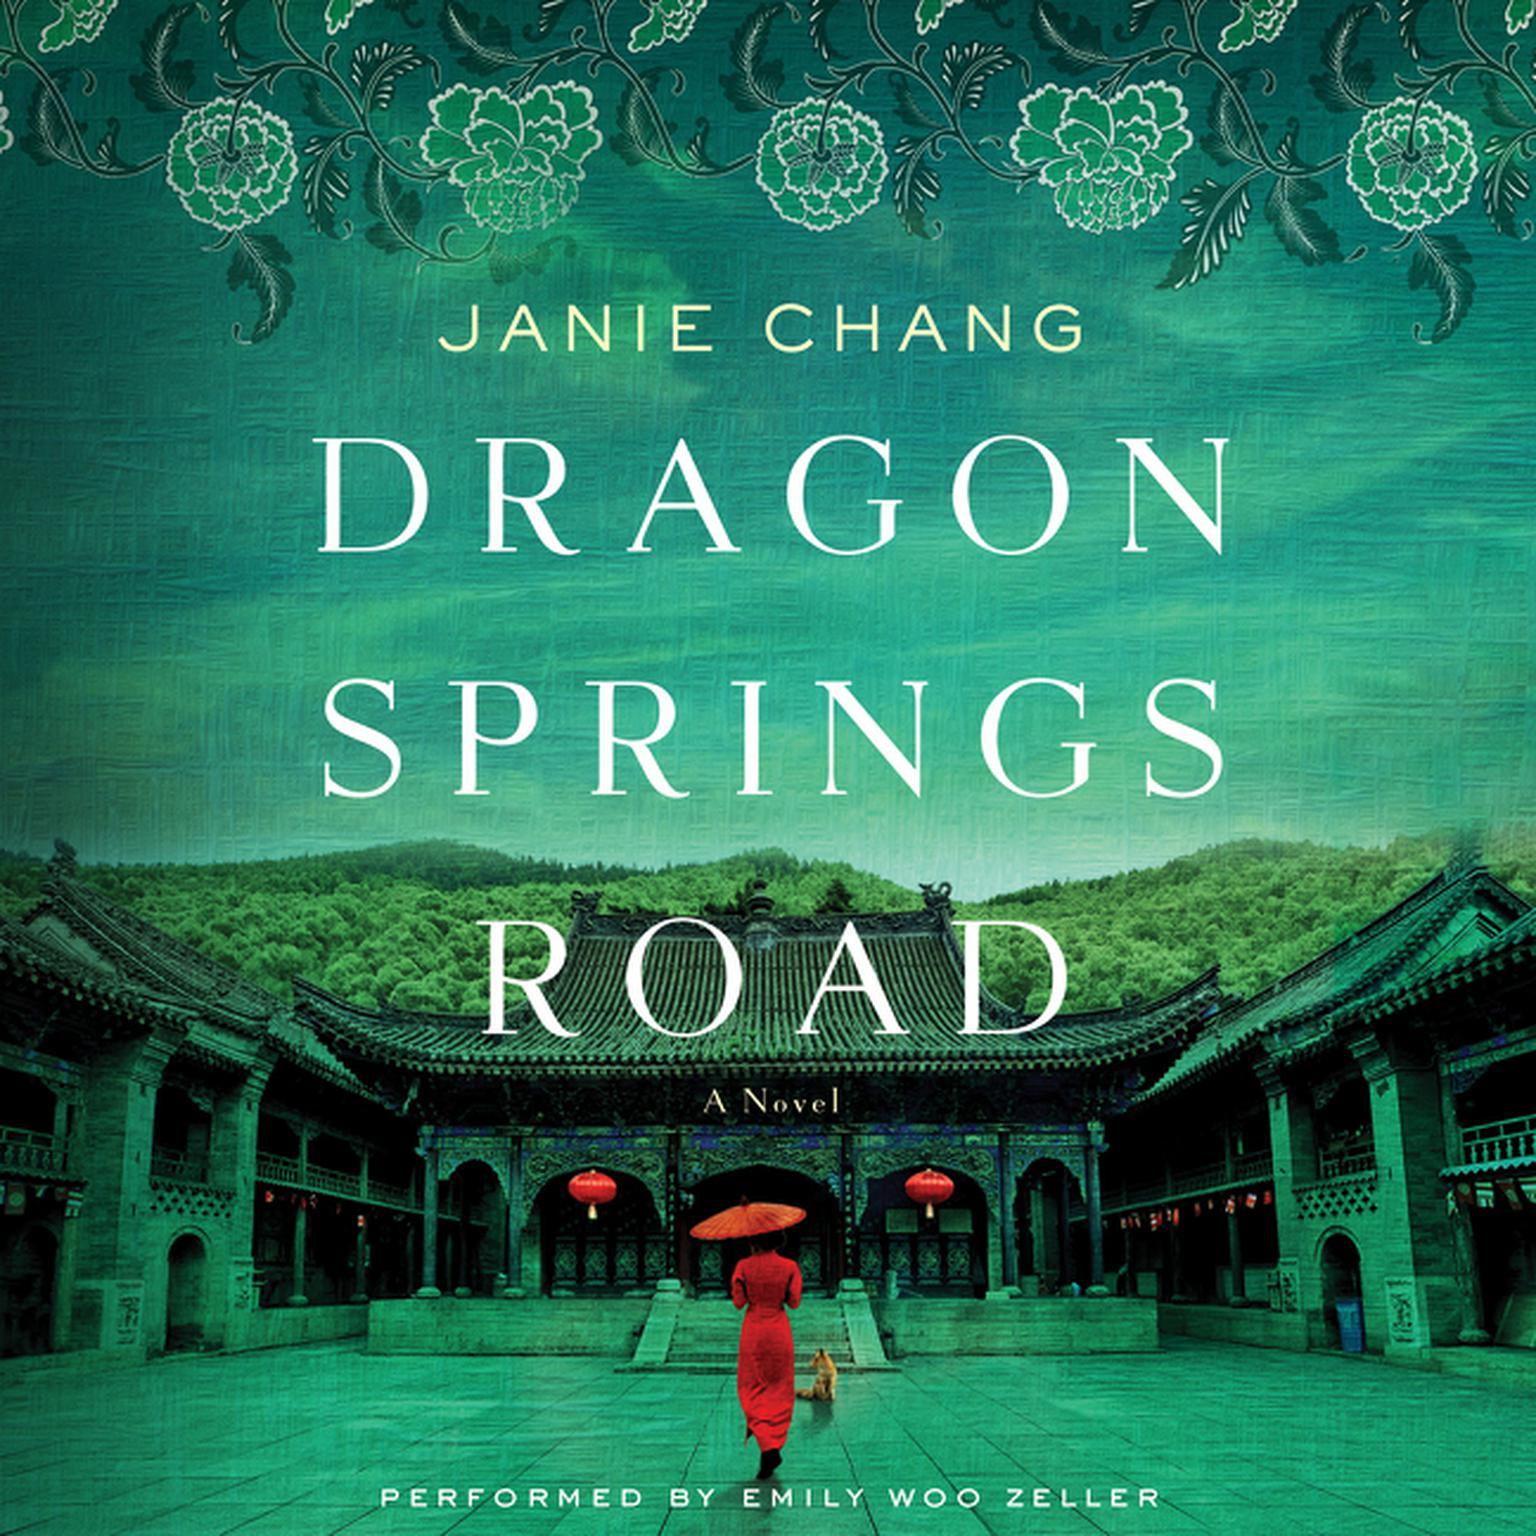 Printable Dragon Springs Road: A Novel Audiobook Cover Art